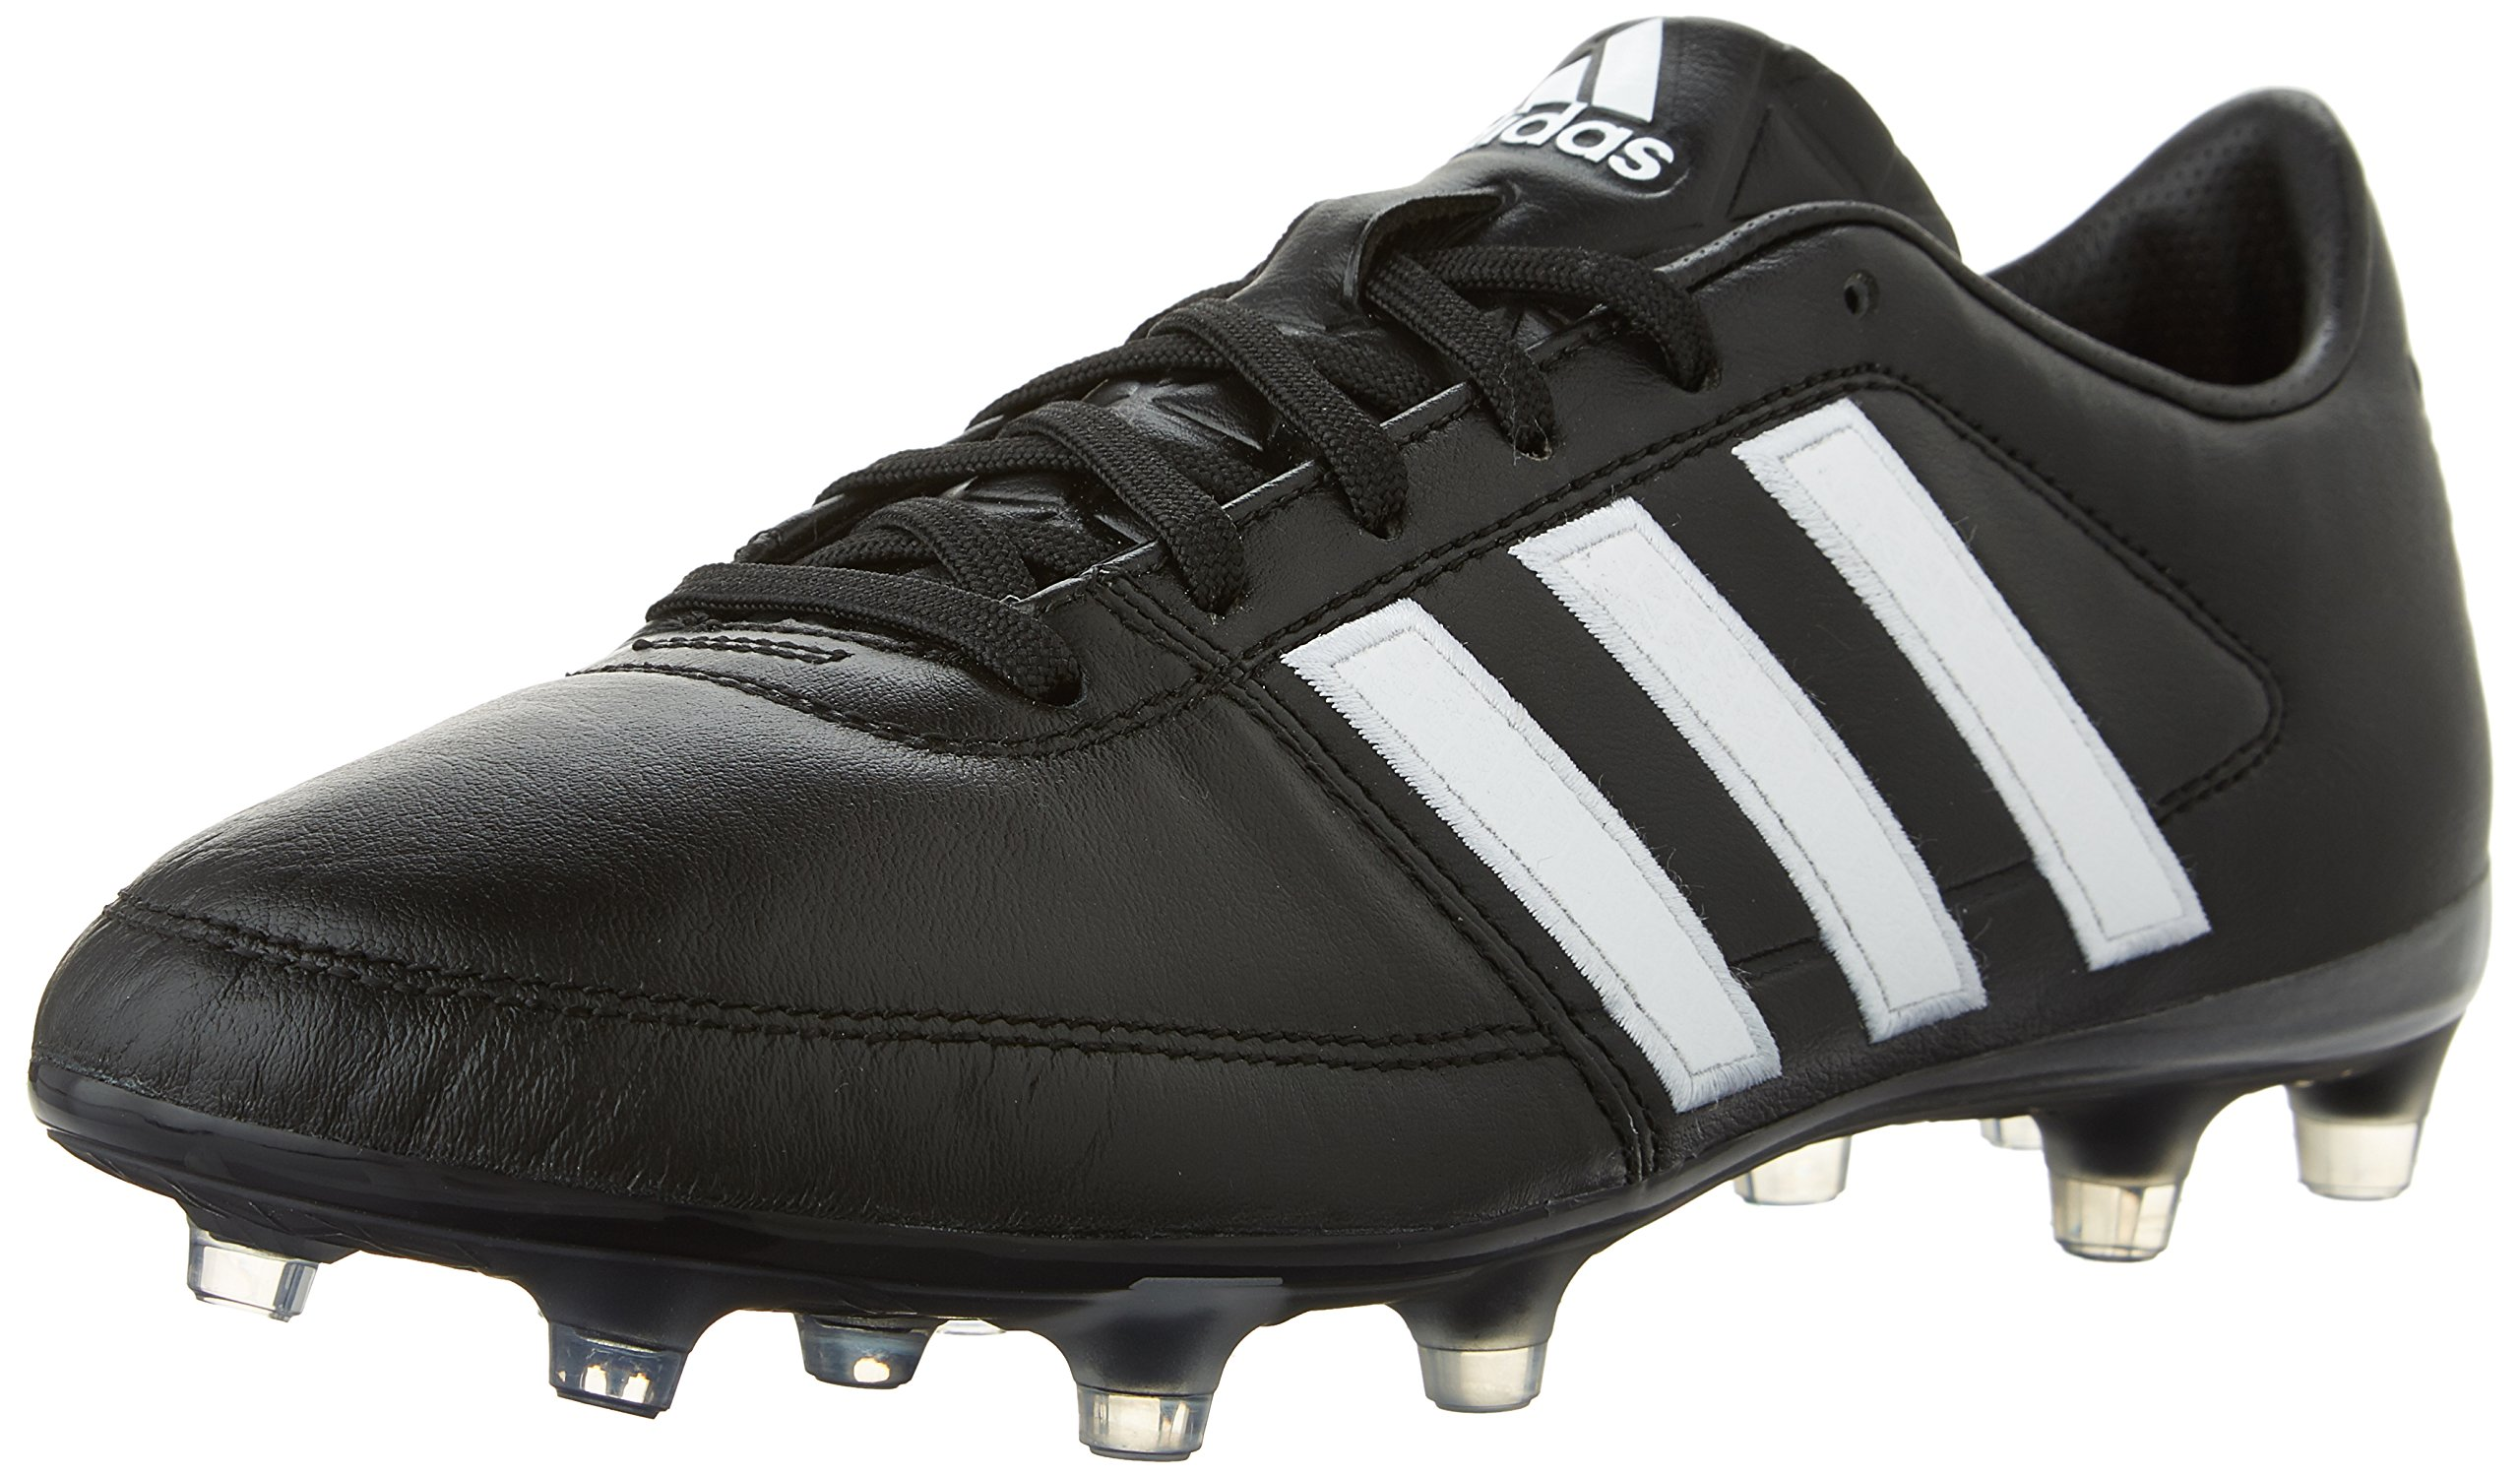 adidas Performance Men's Gloro 16.1 FG Soccer Cleat, Black/White/Metallic Silver, 4.5 M US by adidas